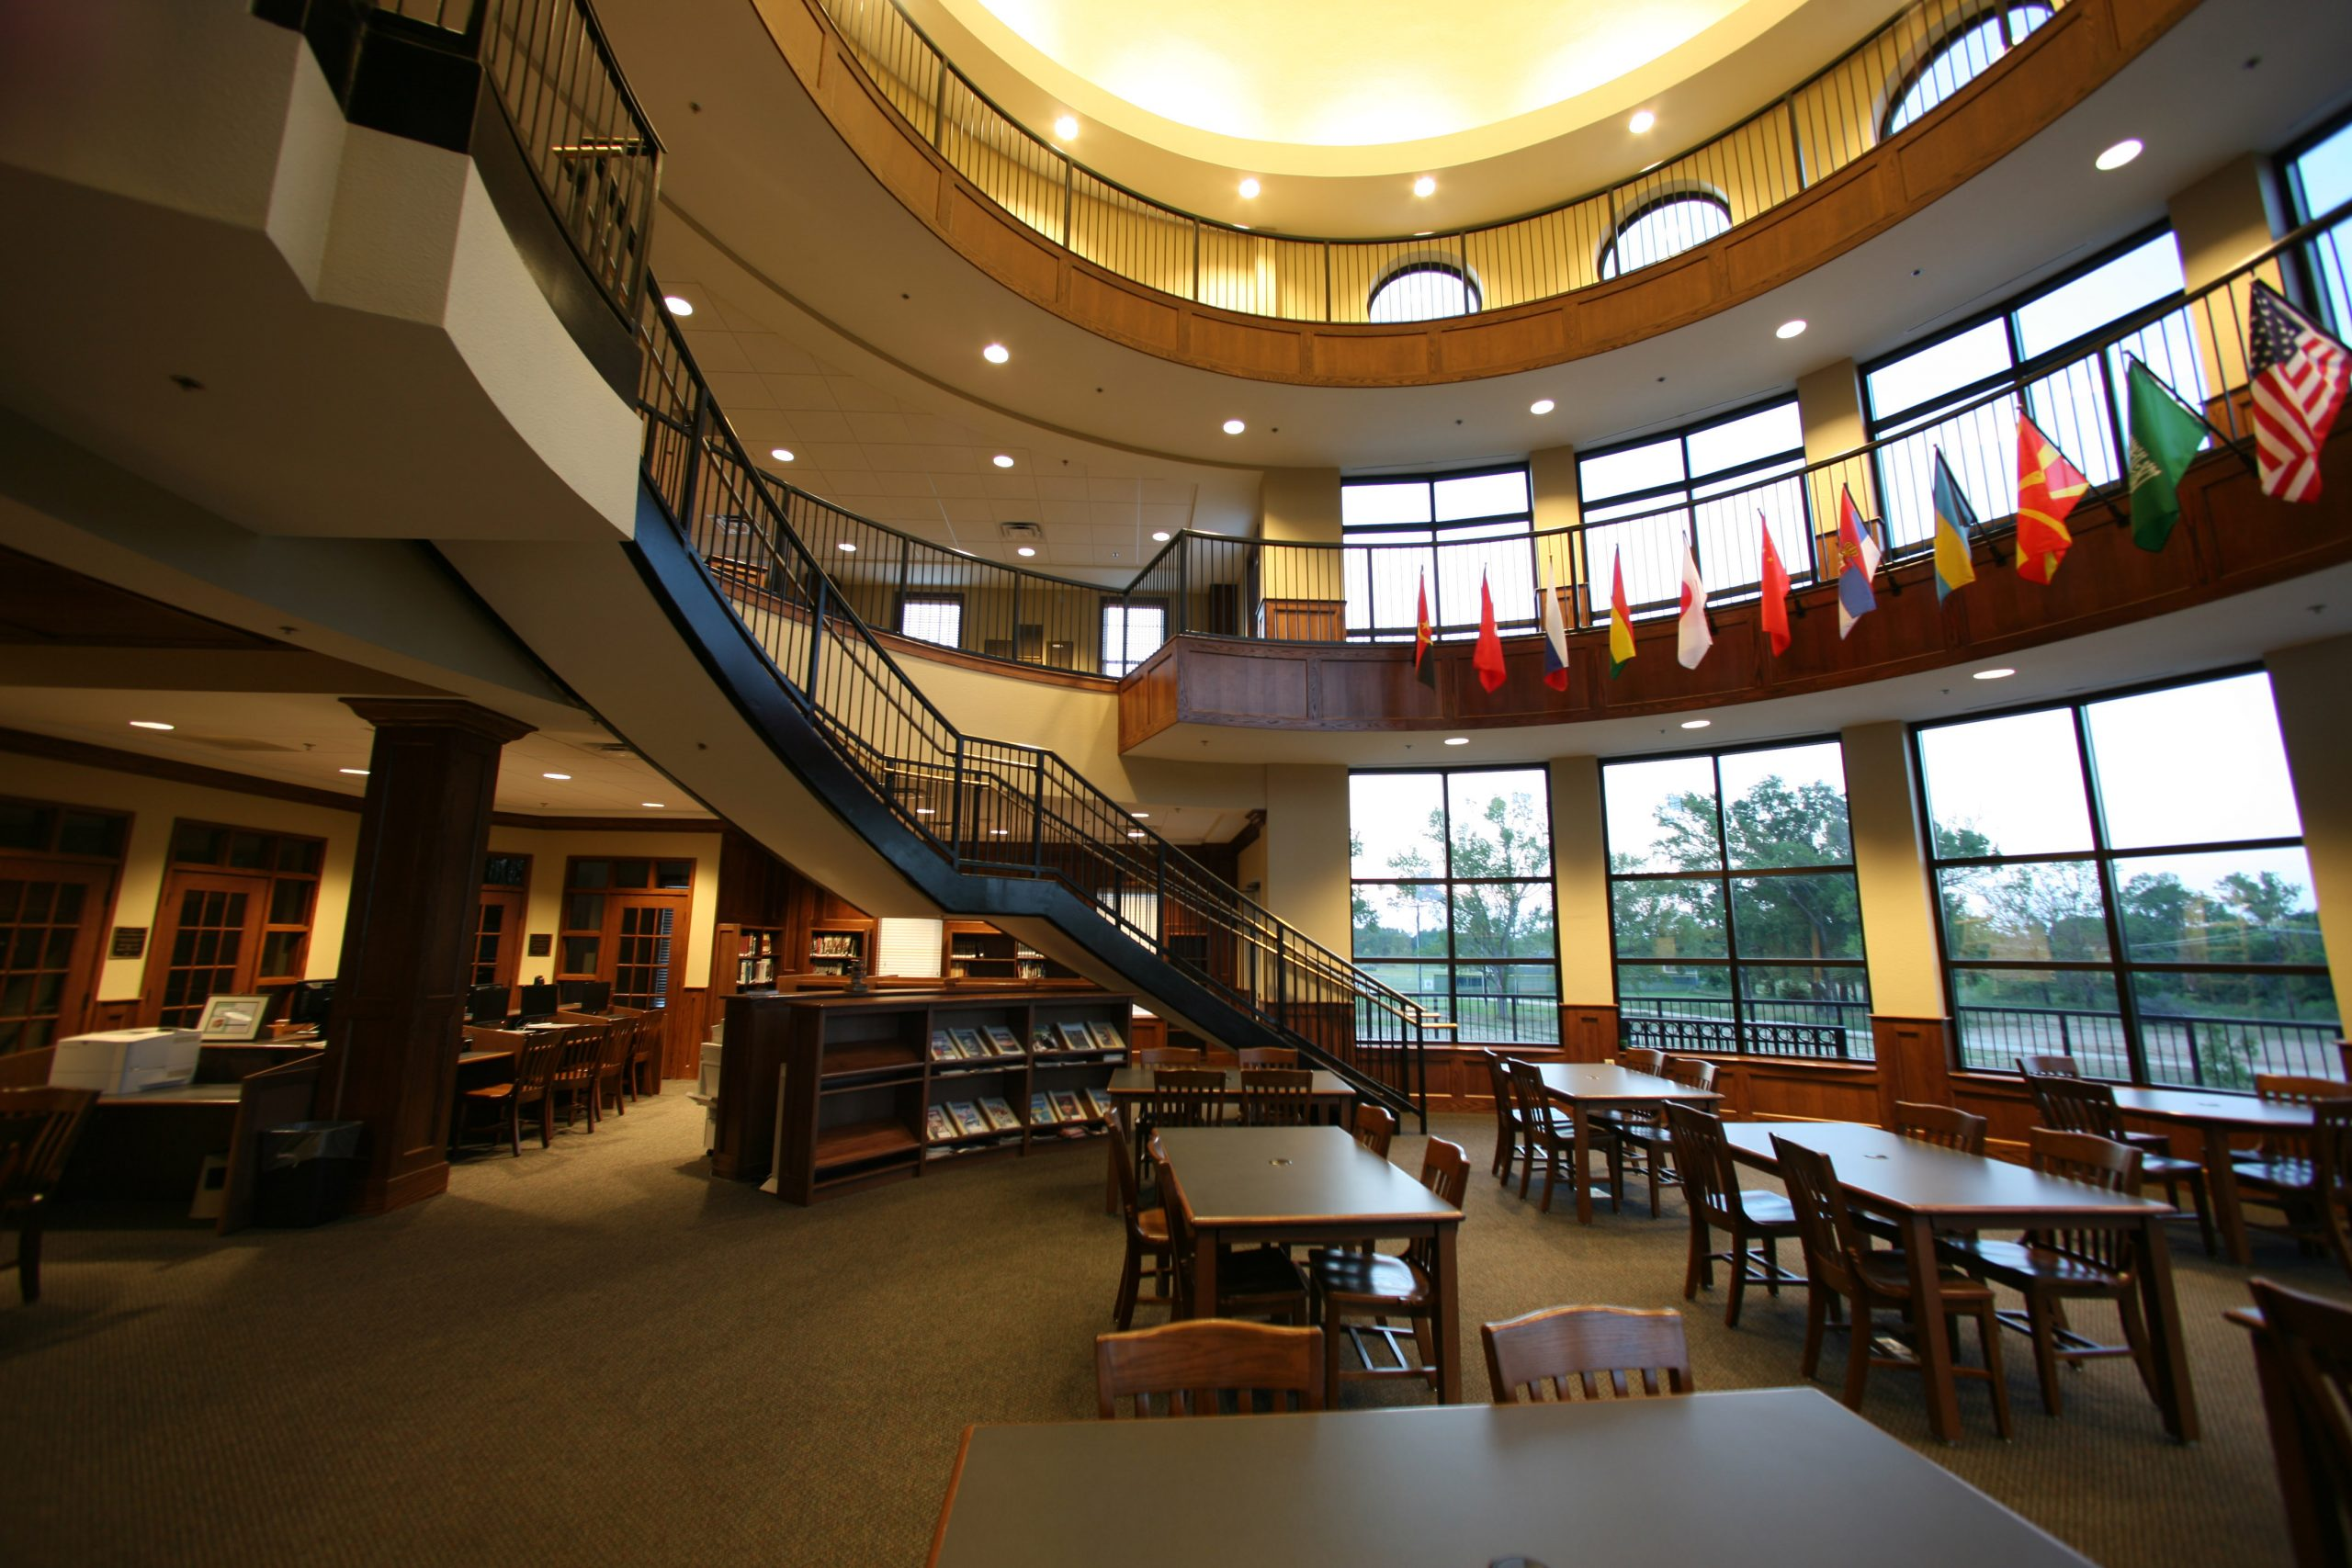 brook hill school founders hall - school architect east texas - tyler texas educational builder - butler architectural group